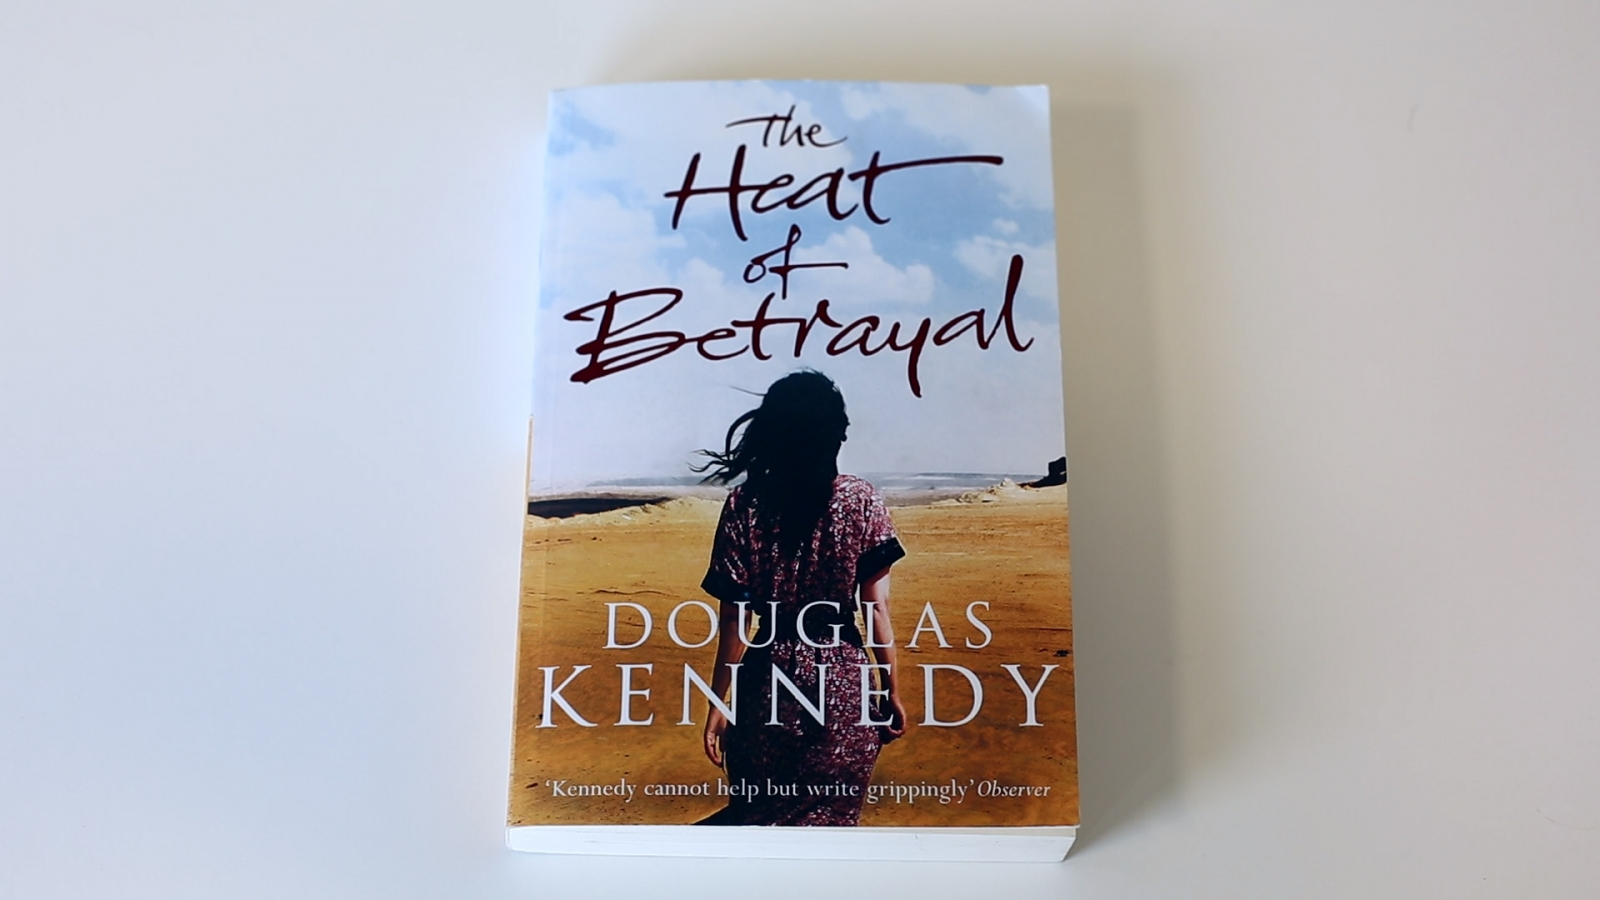 The Heat of Betrayal novel